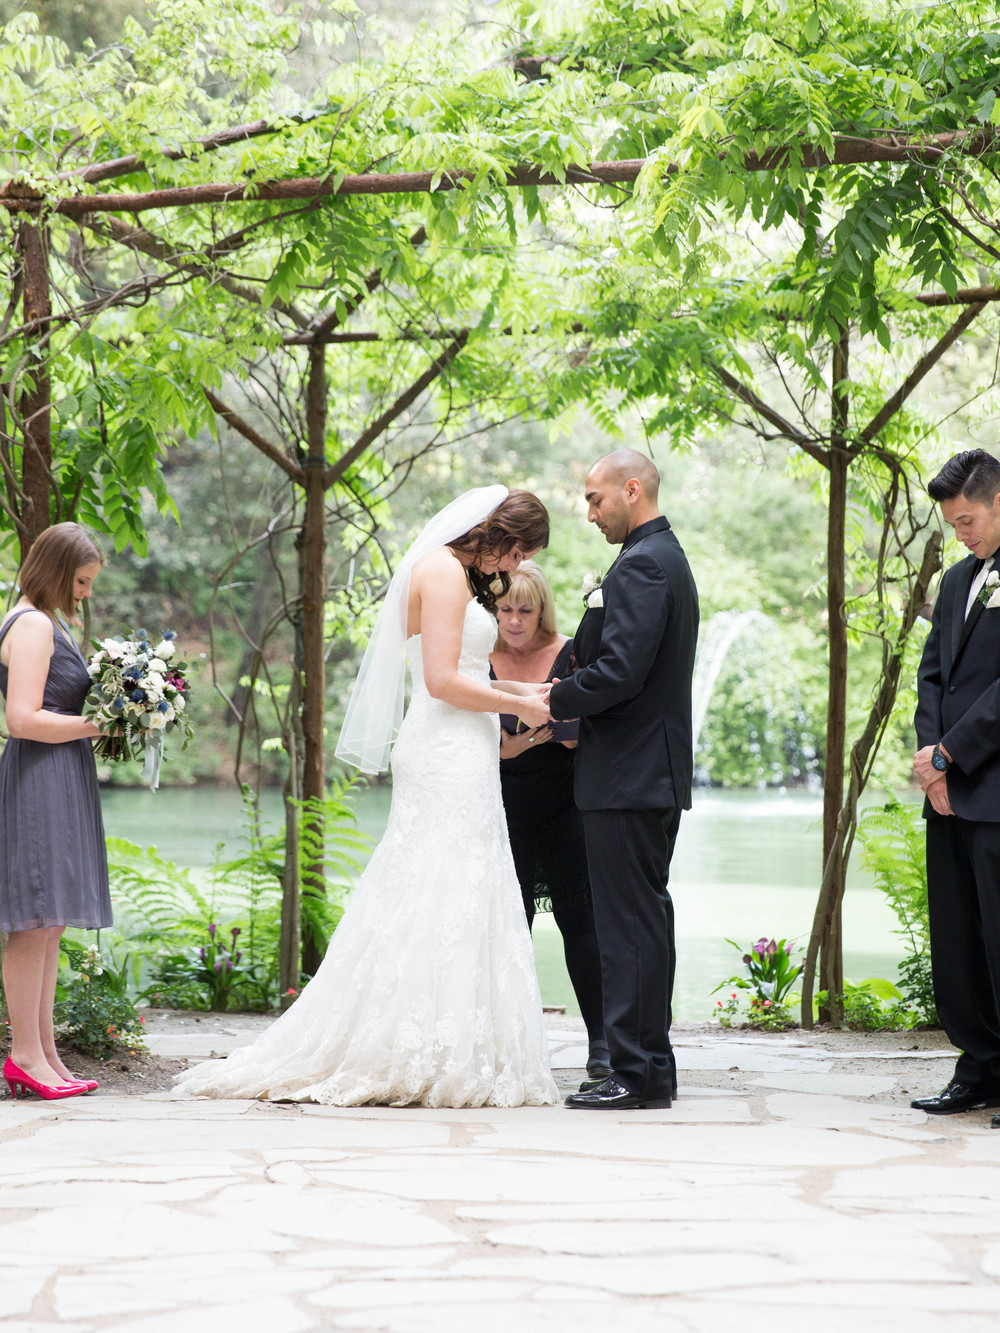 Meghan Mehan Photography - Alisa & Aaron_Nestldown Wedding - 365.jpg